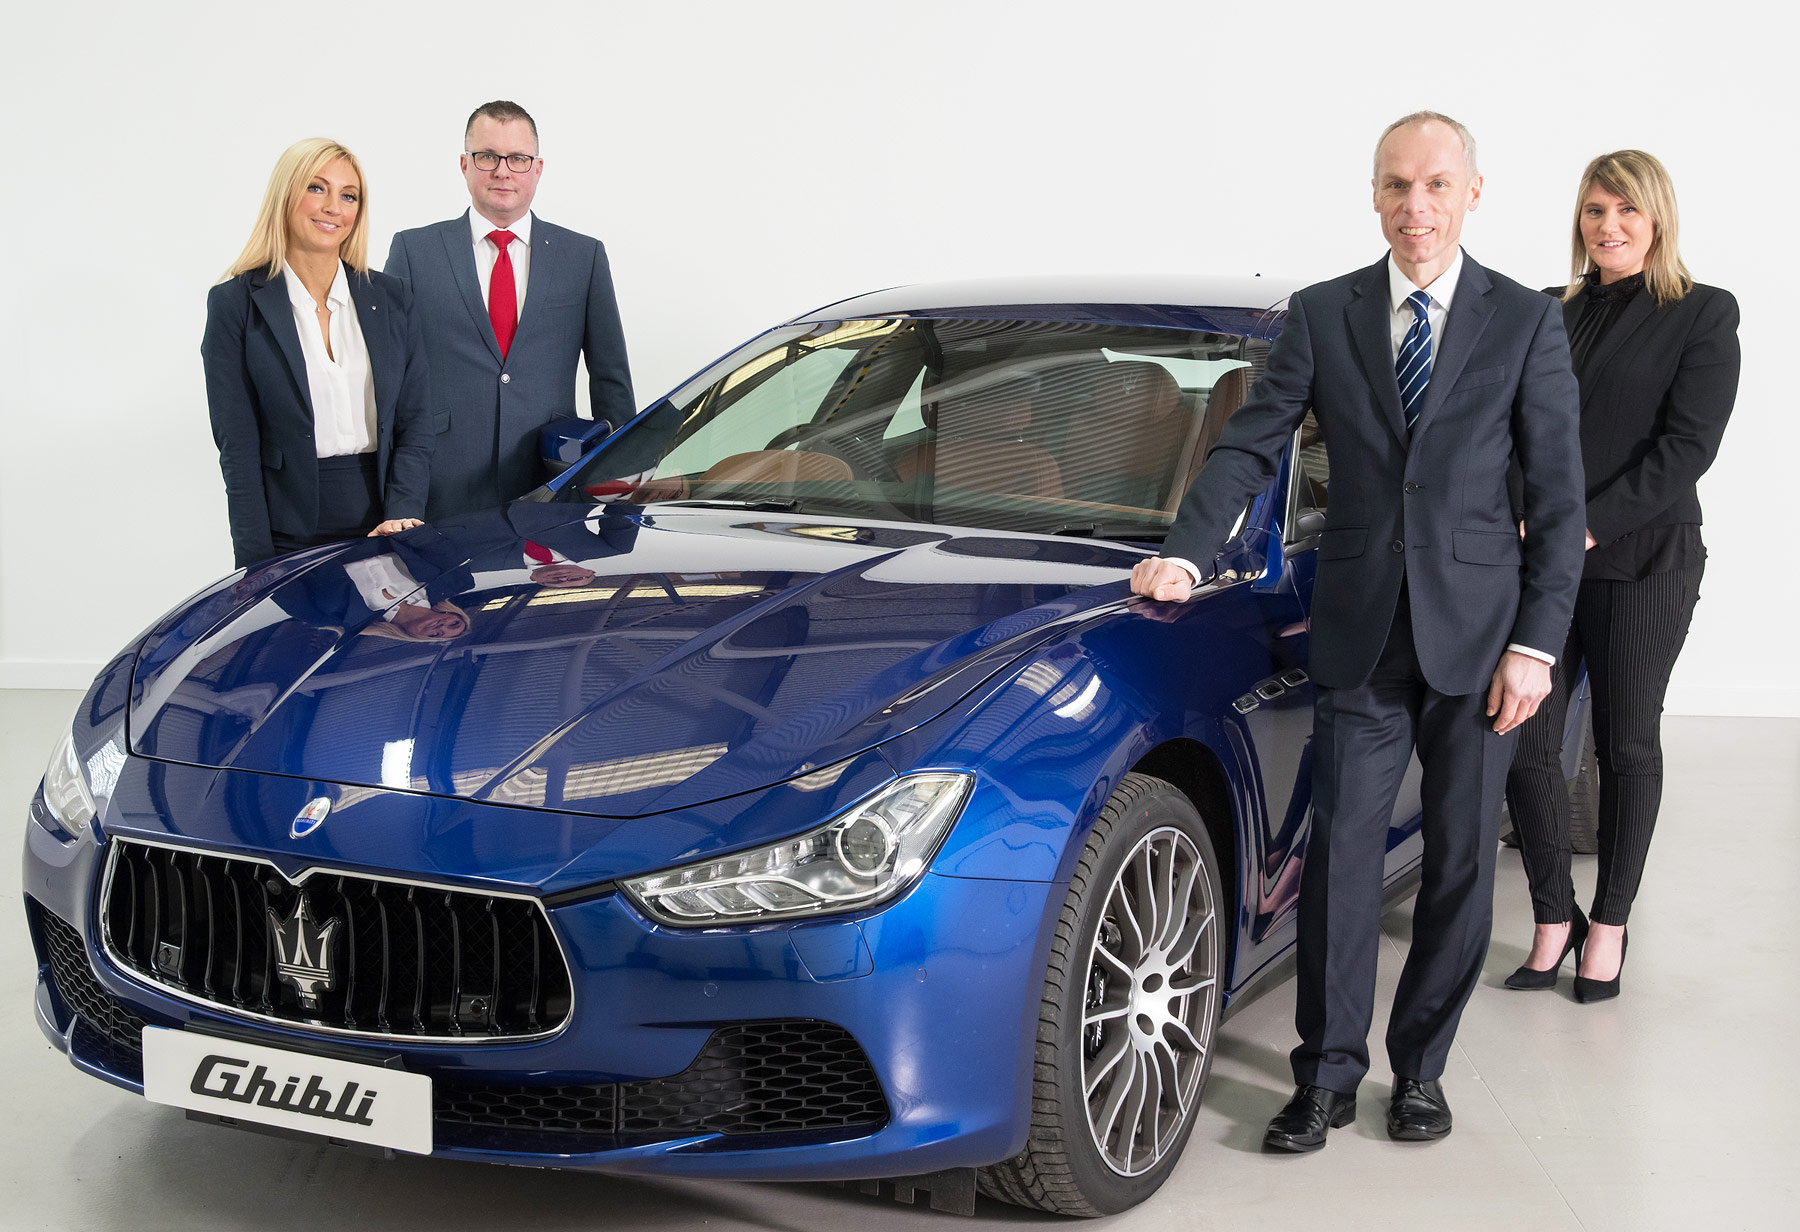 Maserati GB Bolsters Growth In Corporate Sector With New Appointments